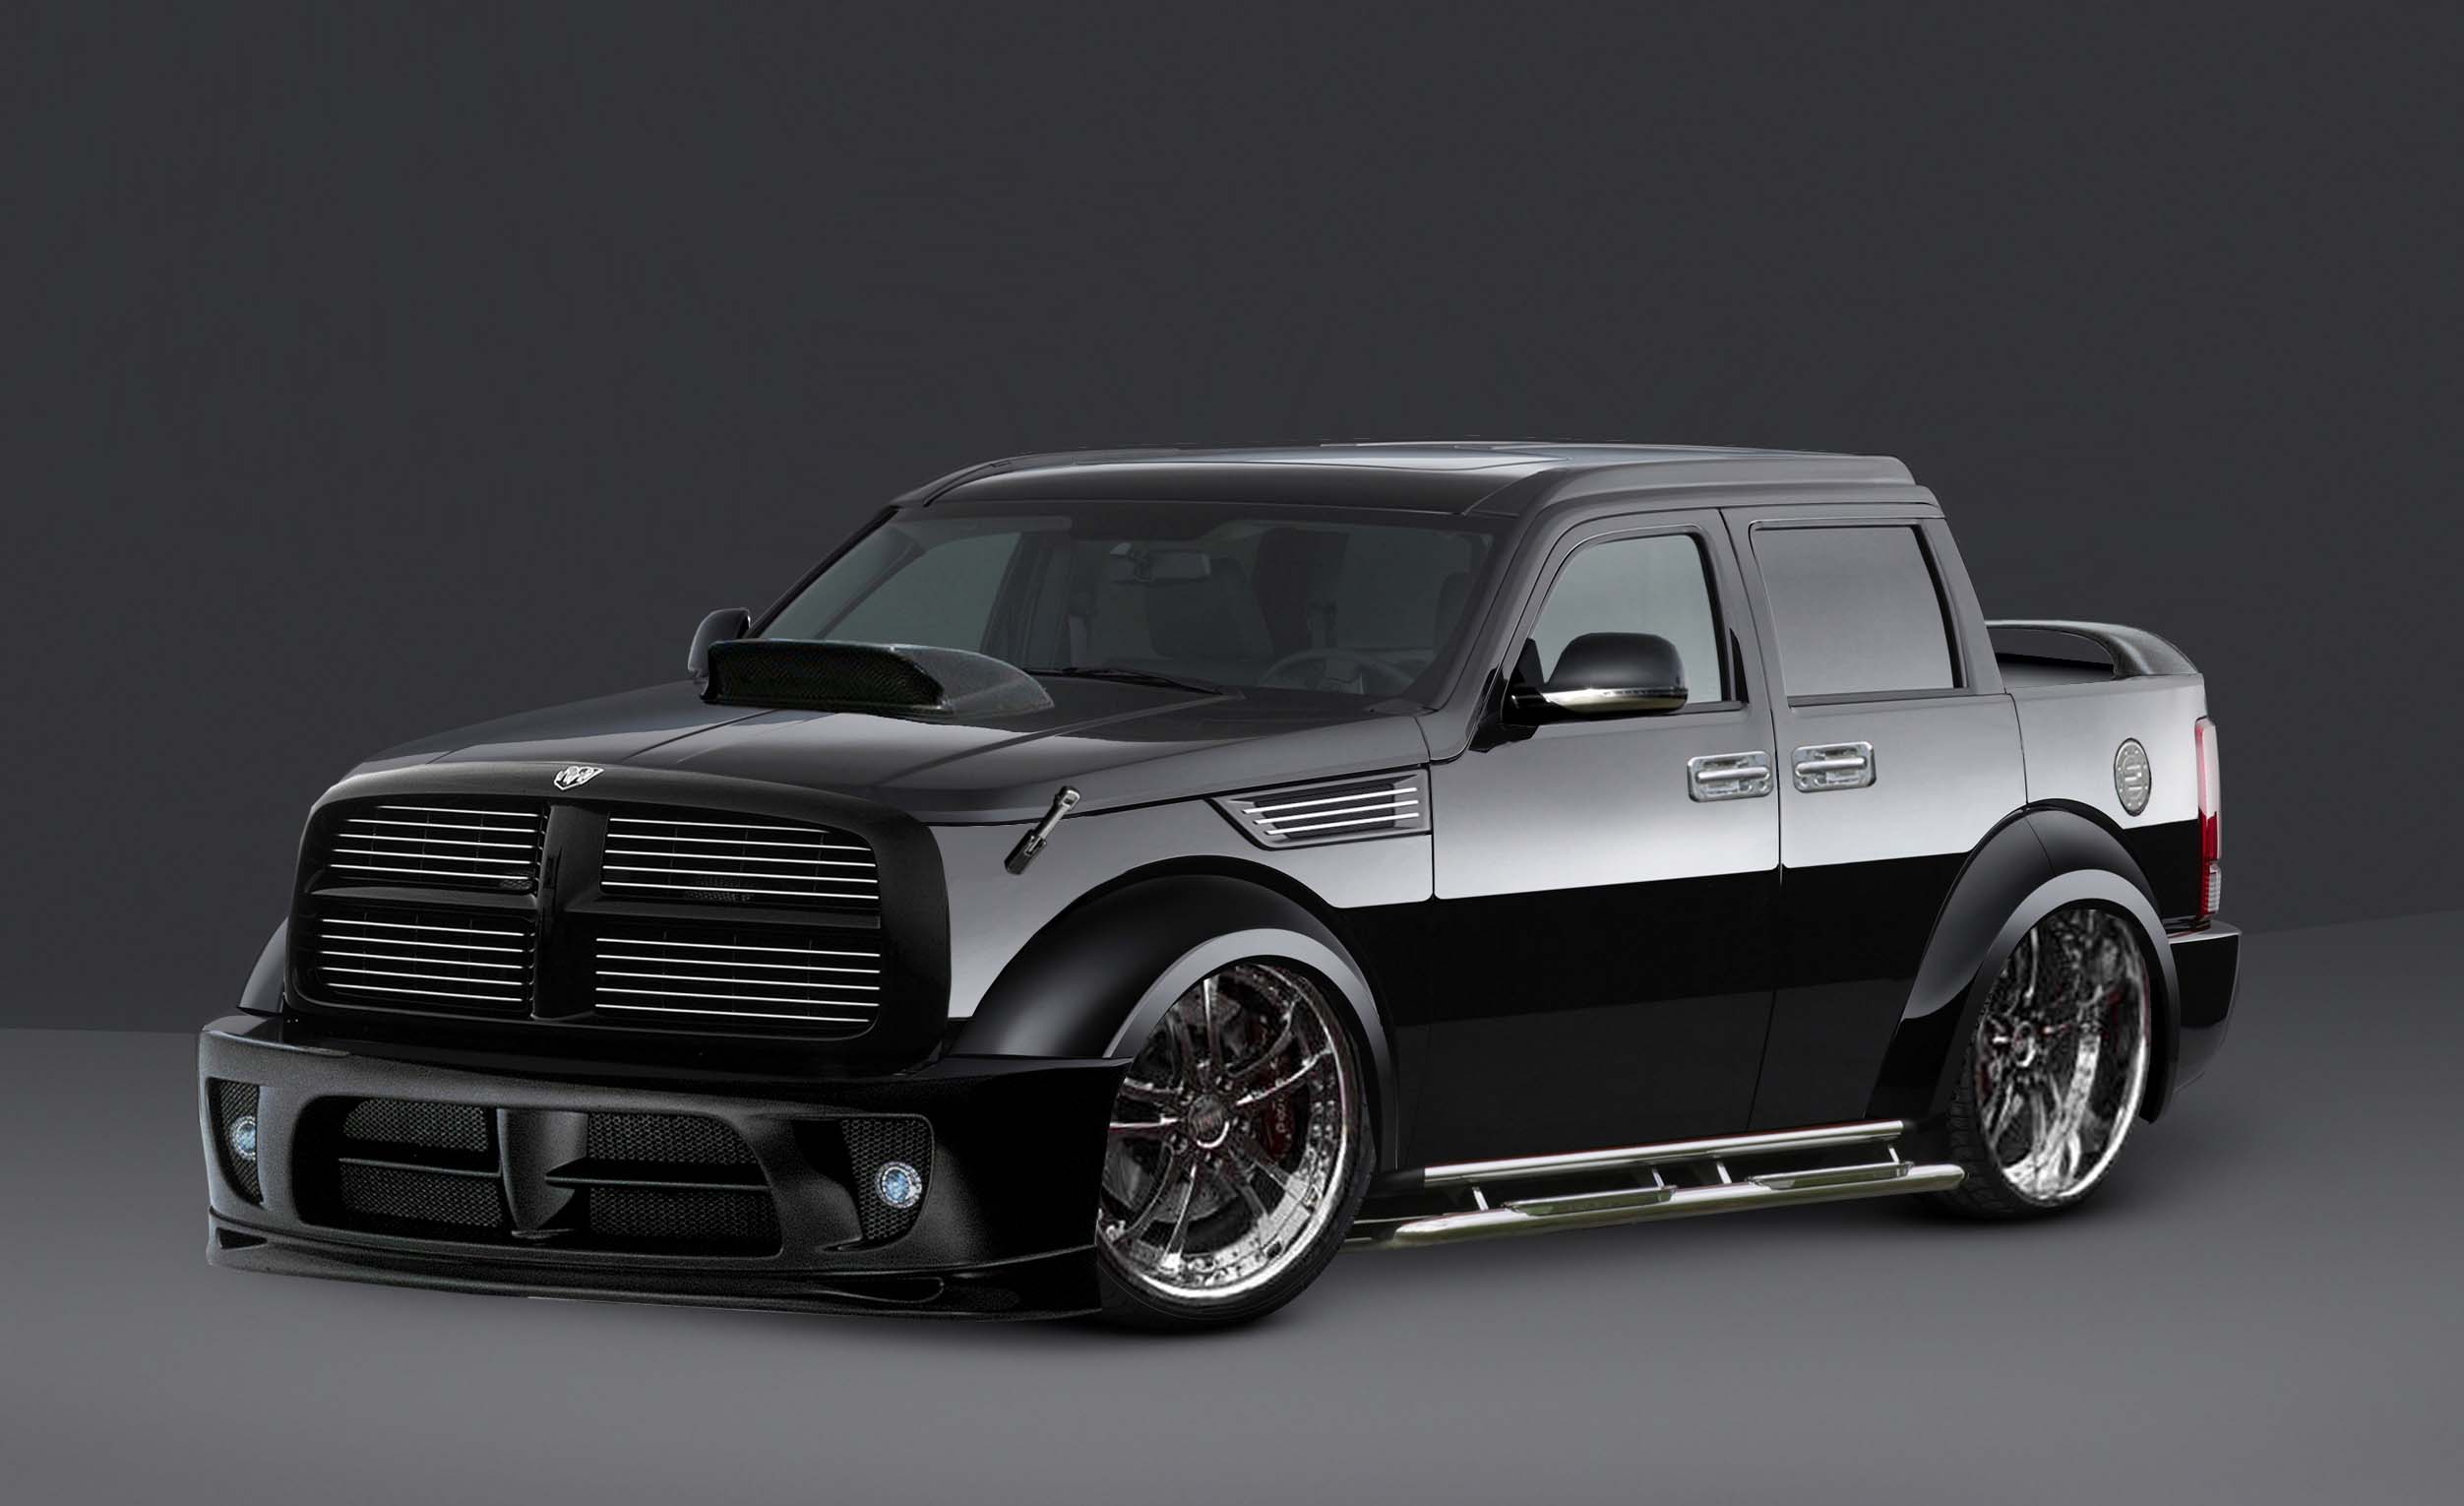 Car Brands Starting With F >> Dodge Nitro 2015: Review, Amazing Pictures and Images – Look at the car